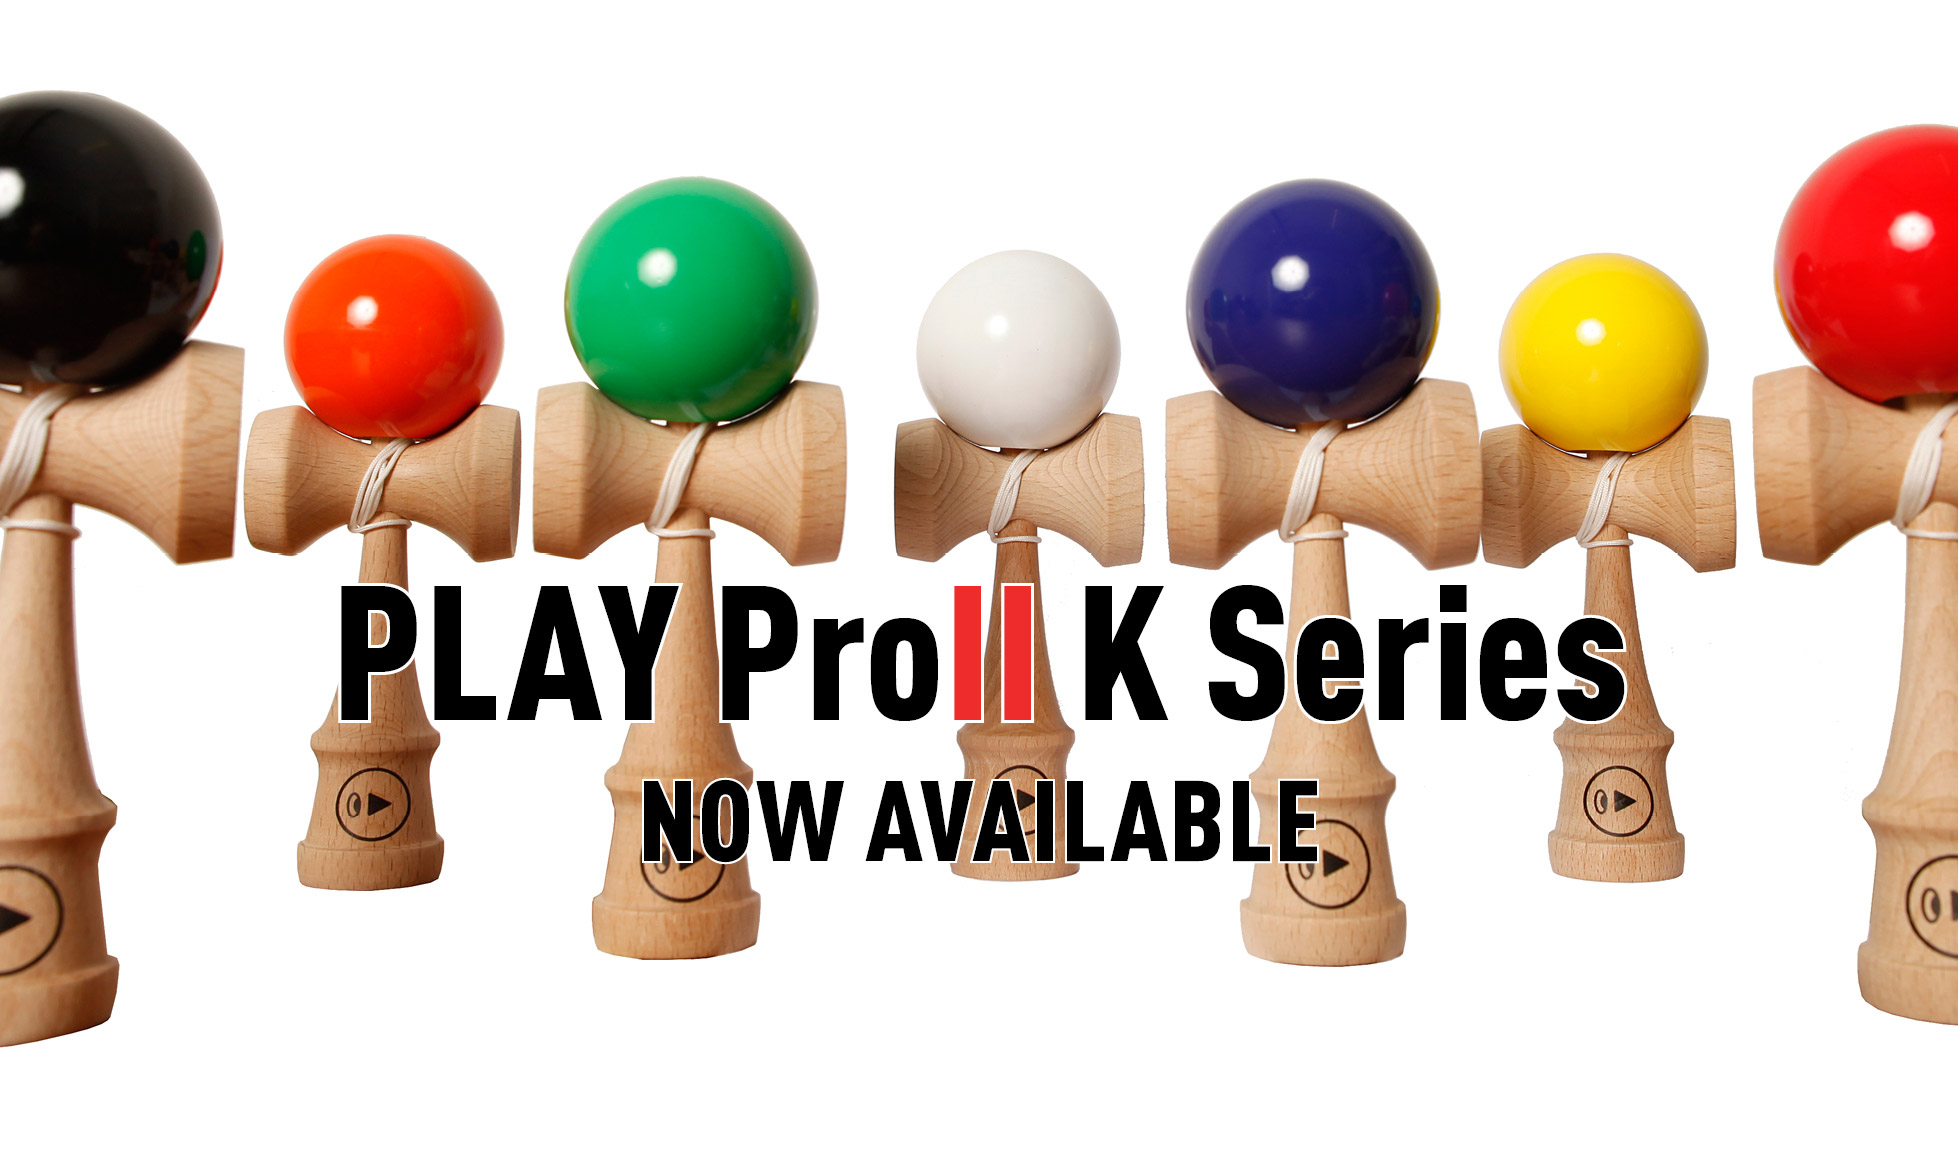 KENDAMA PLAY GRIP II K - New models available now